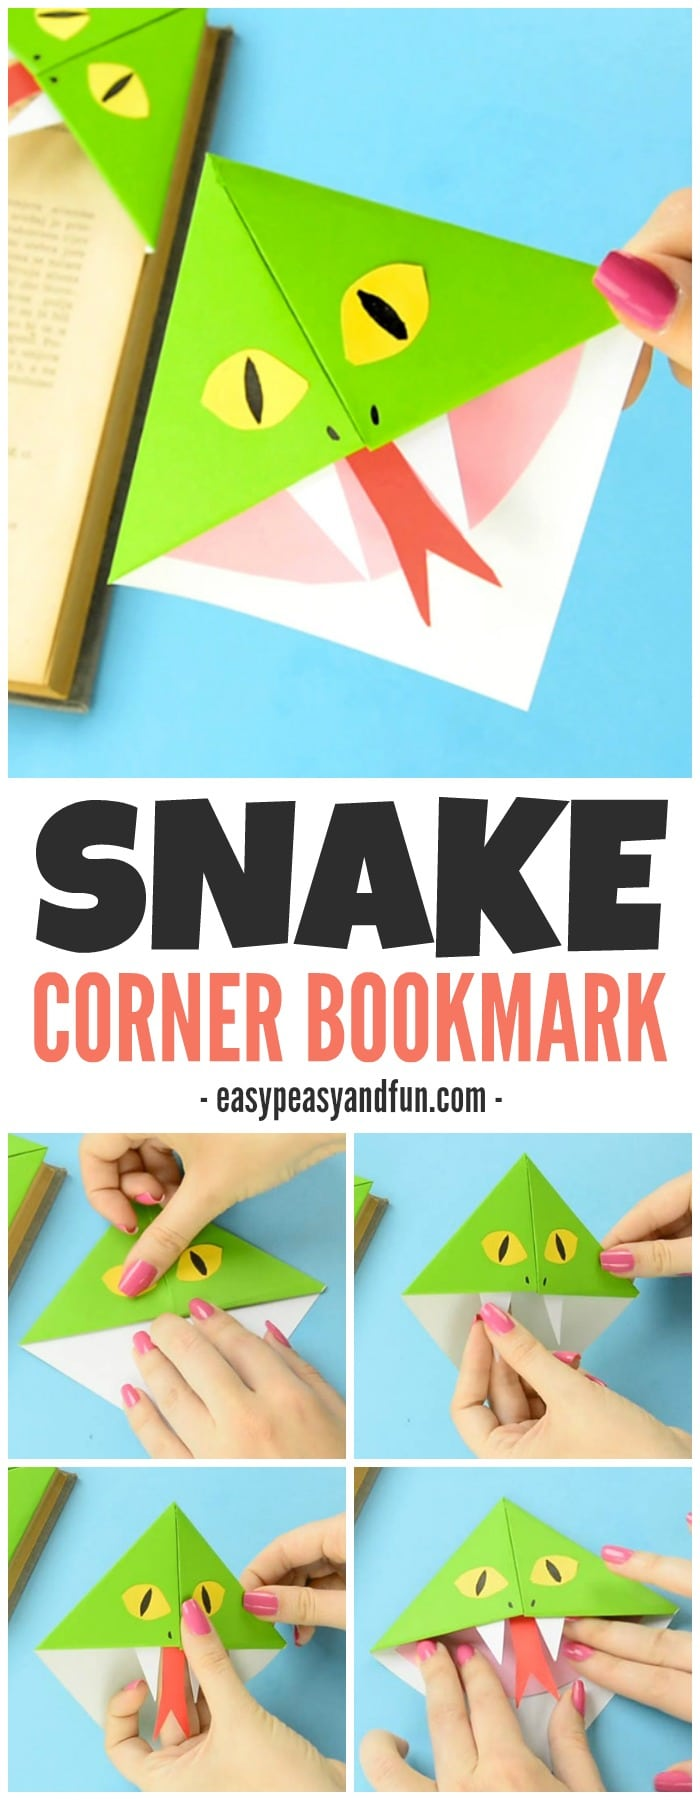 Snake Corner Bookmarks Simple Origami for Kids to Make